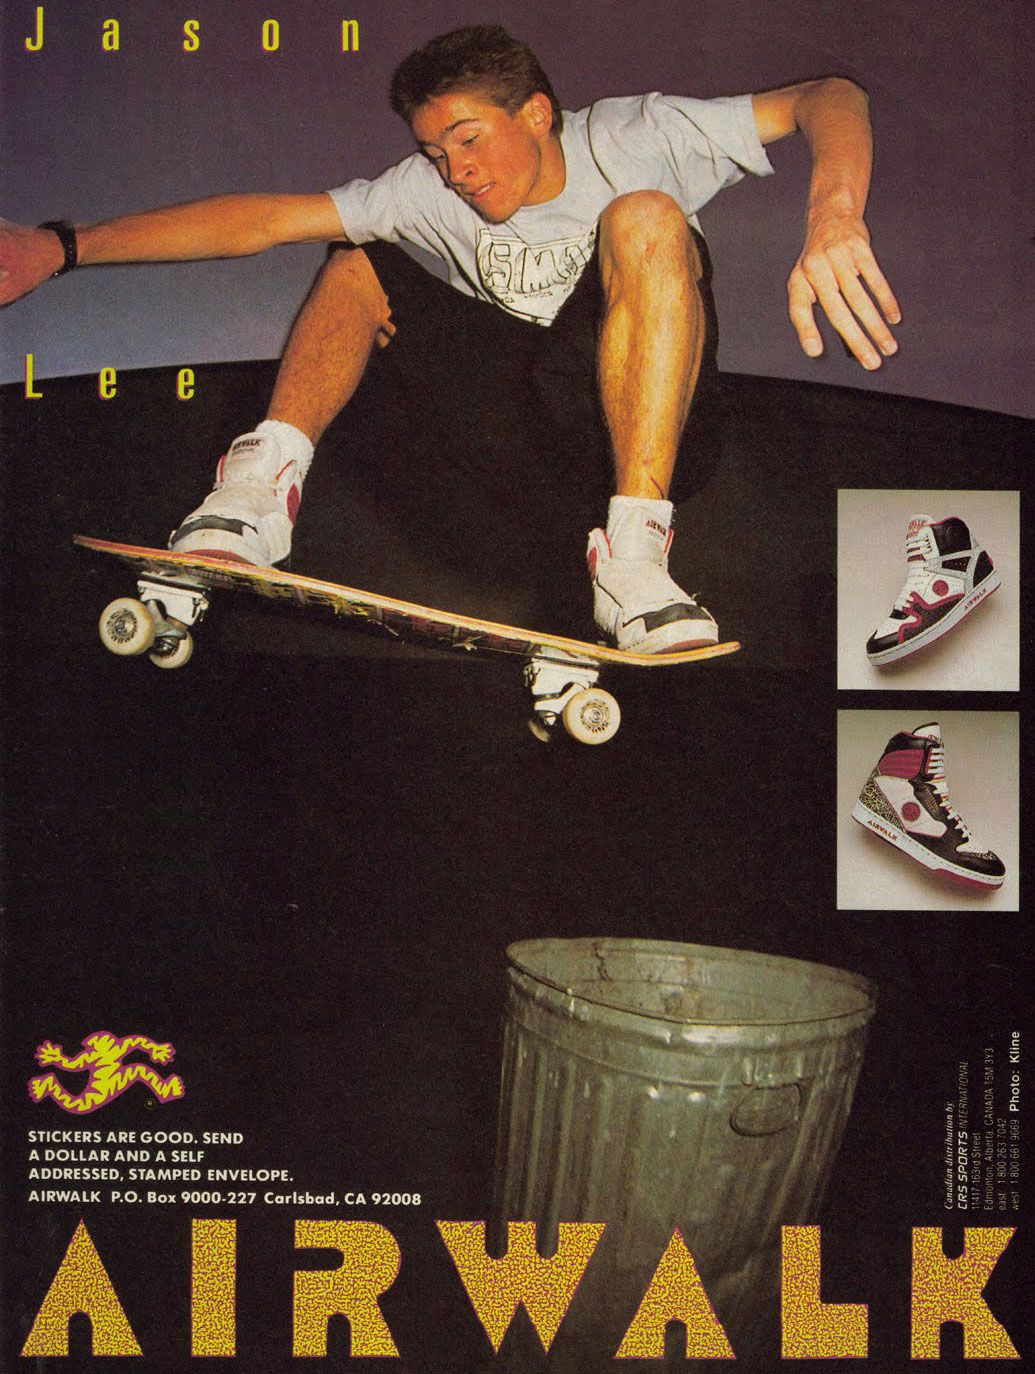 jason lee jason lee pinterest skateboard skate surf